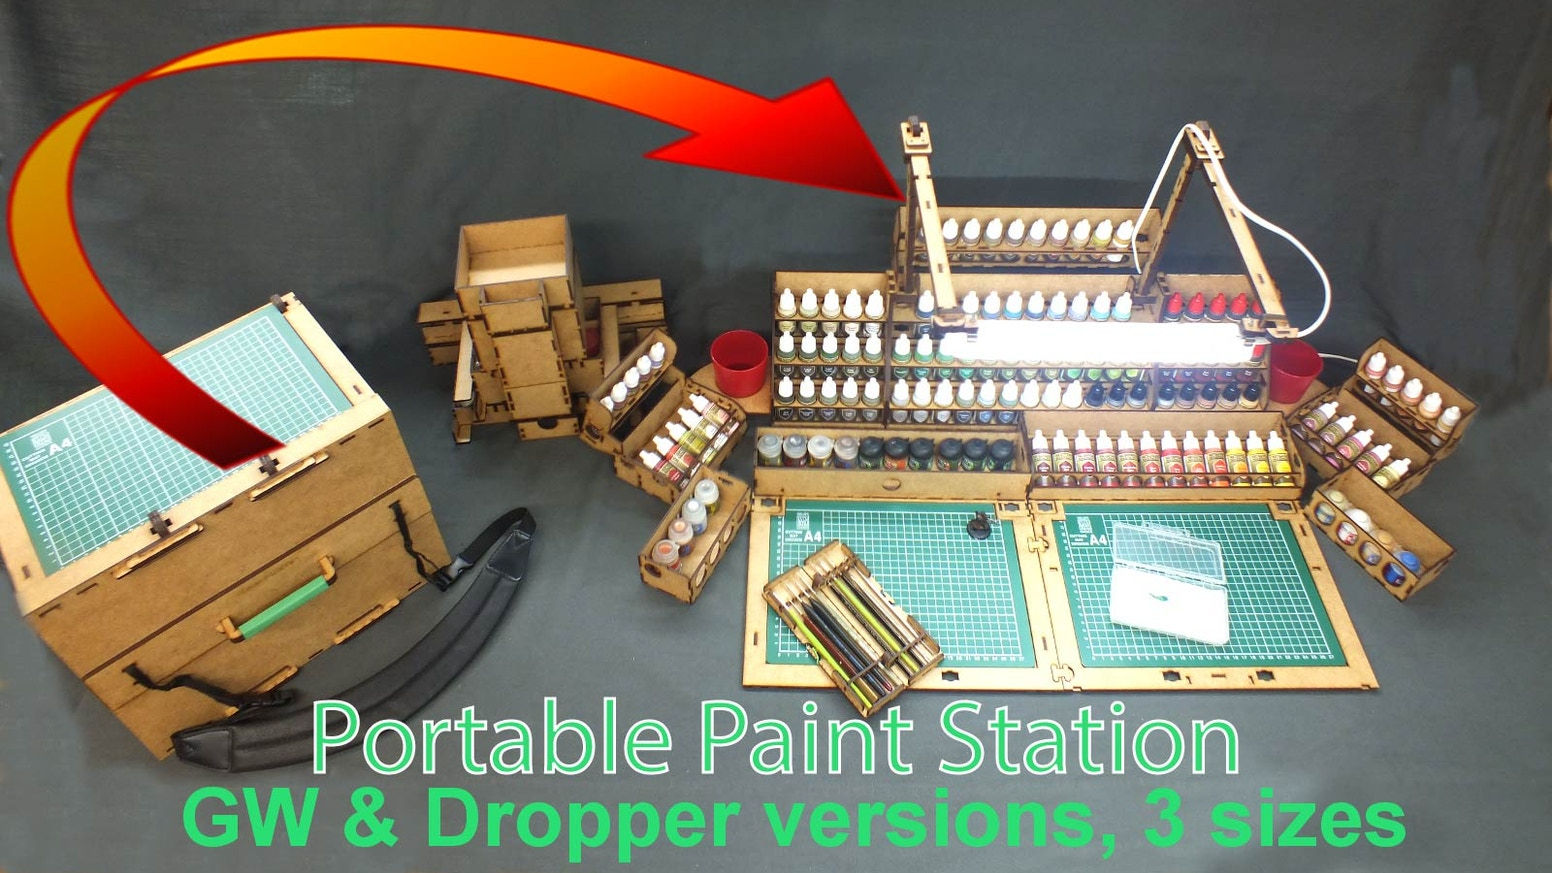 Pre-order the case for up to 162 paints, miniatures, tools, which transforms into a full painting station, complete with lamp & work area.